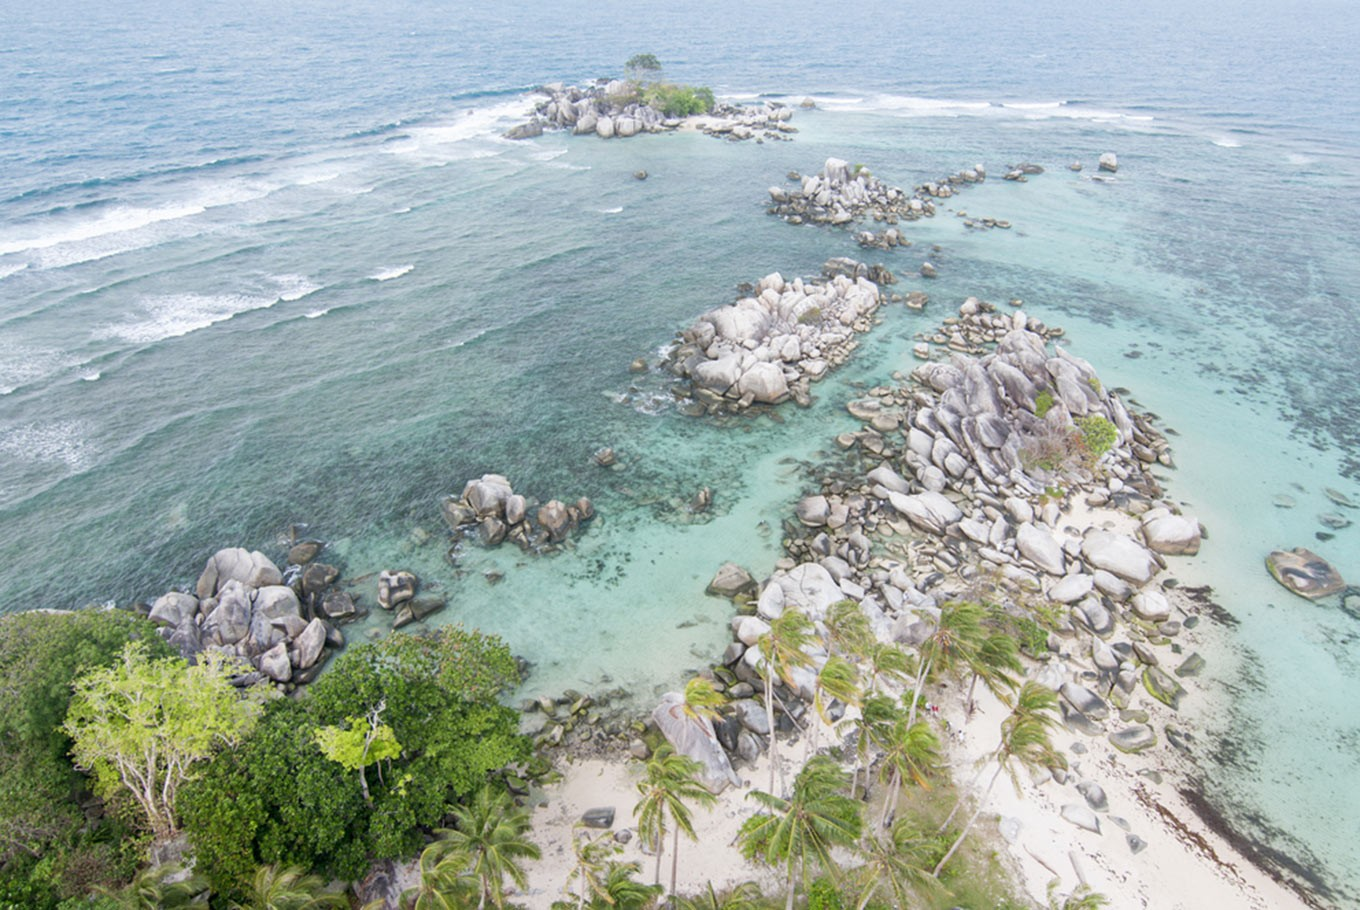 Bangka Island to build two Special Economic Zones